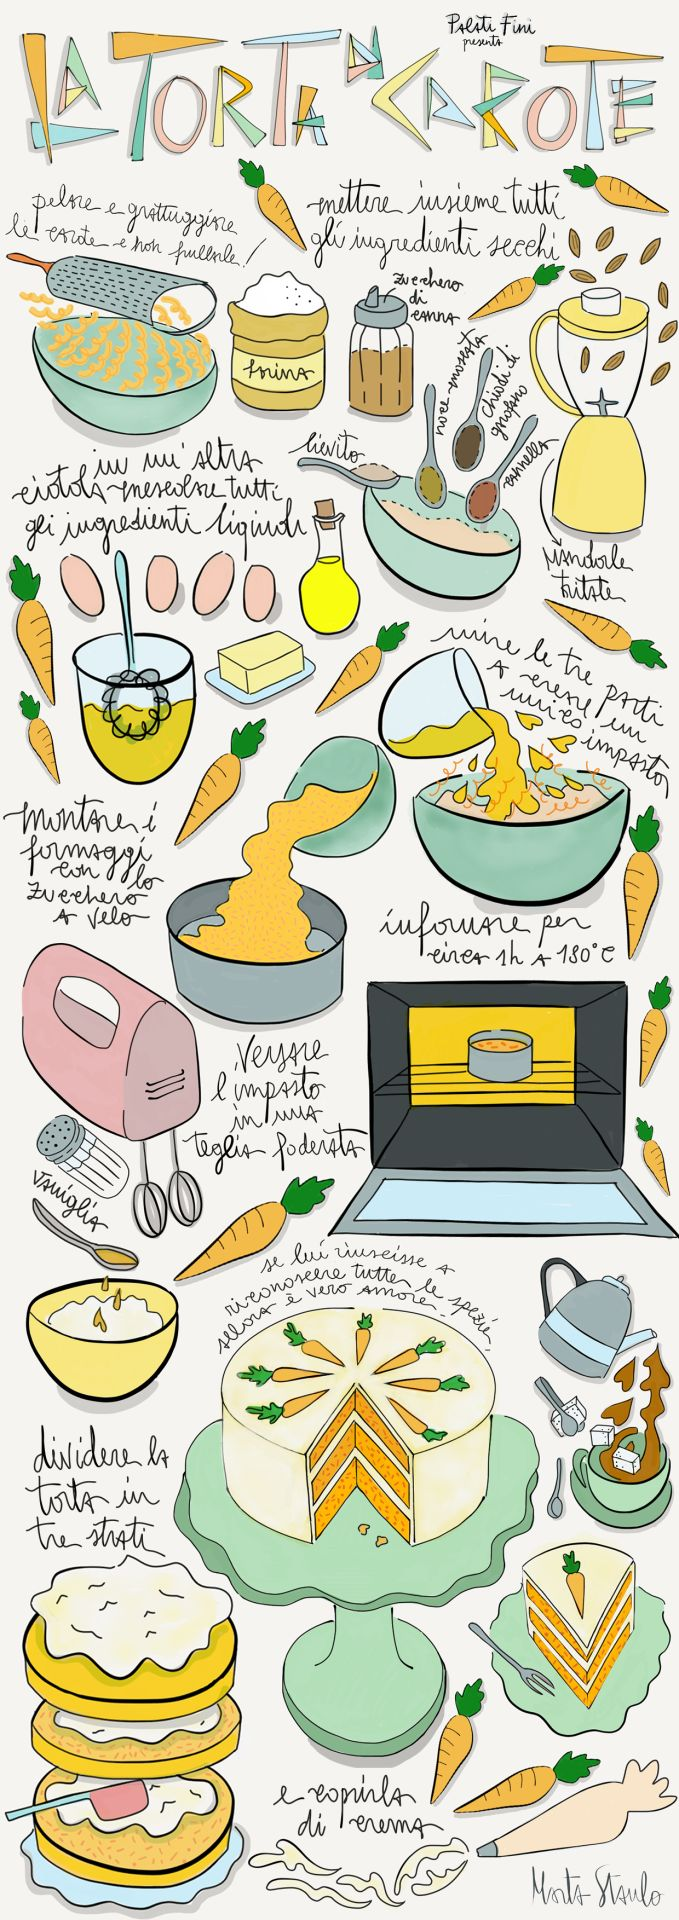 carrot cake illustrated recipe food illustration